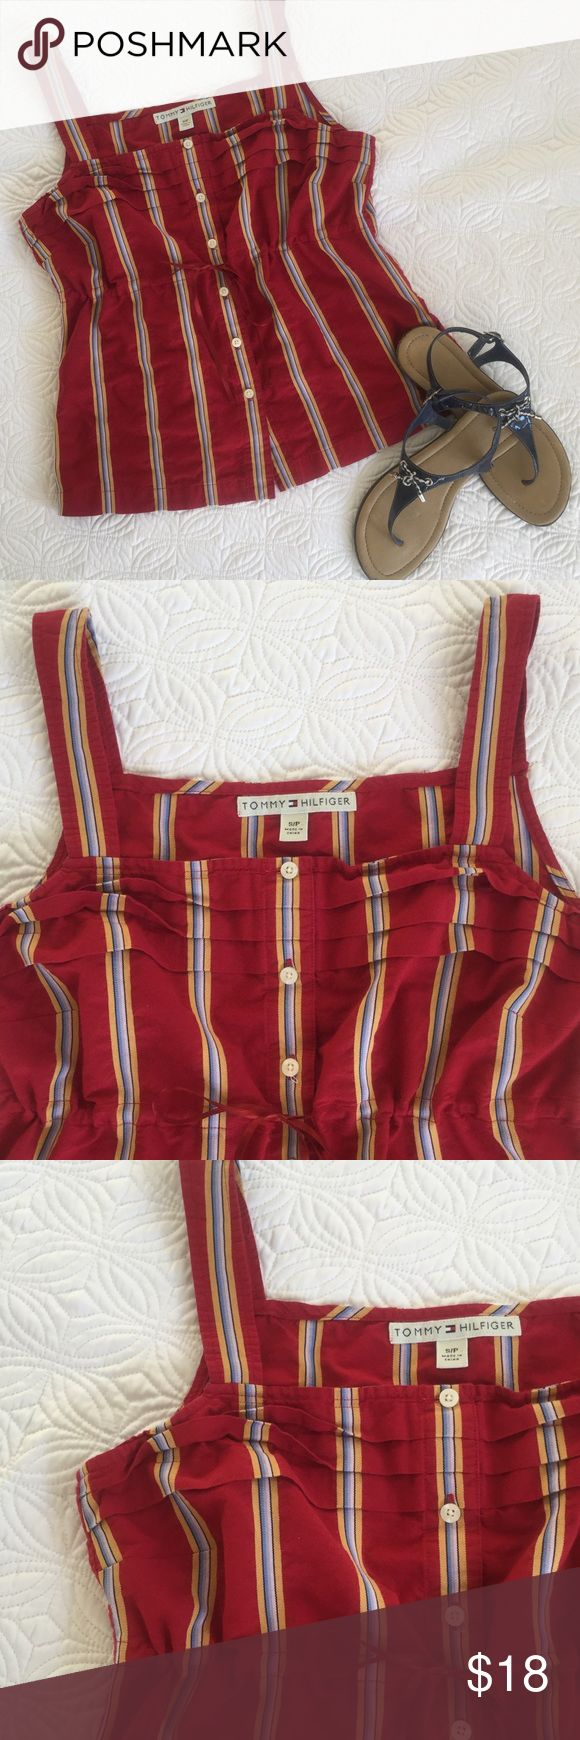 """Tommy Hilfiger striped top This cute top from Tommy Hilfiger looks great with shorts, capris and jeans. Size S. Made from 100% cotton. Length in front is 16"""" from the neck to the hem. Length from the back of the neck to the hem is 17"""". Tommy Hilfiger Tops Blouses"""